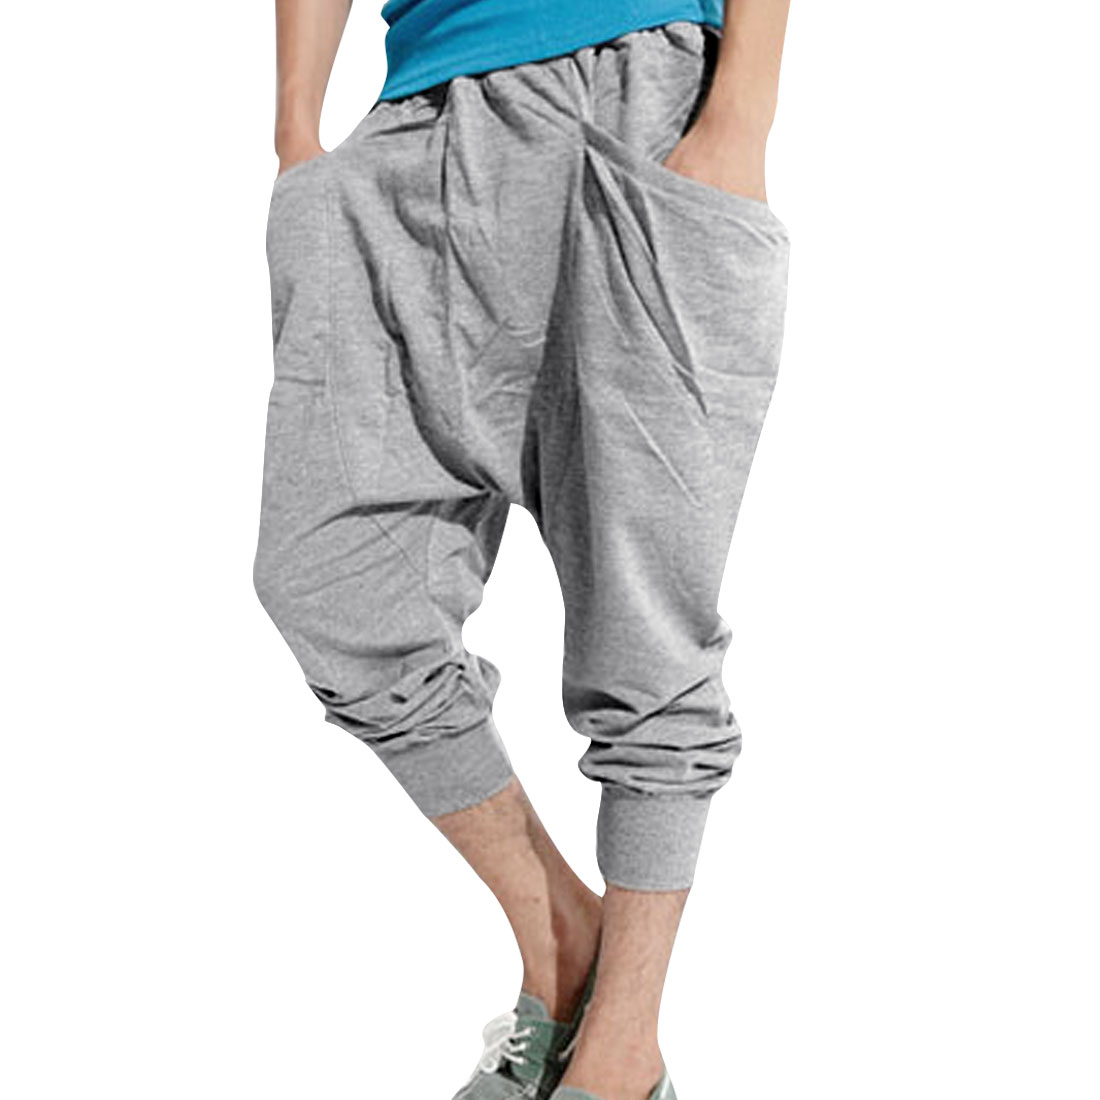 Man Stylish Slant Big Pockets Casual Cropped Trousers Light Gray W29